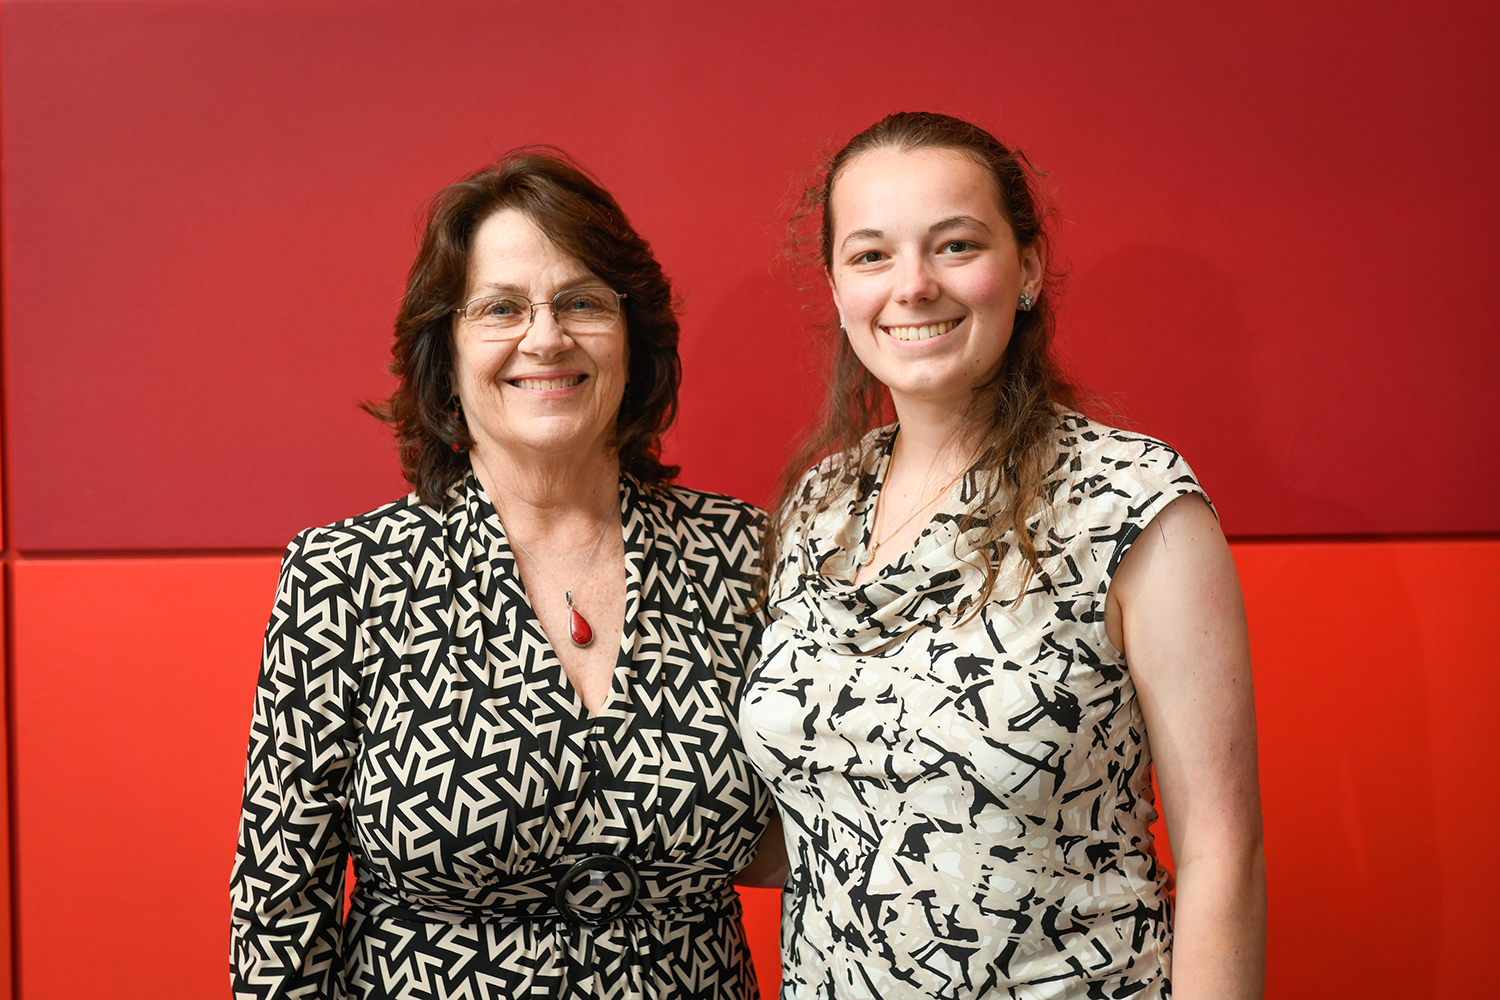 Suzanne Gordon, president of the NC State Engineering Board of Directors, meets with a scholarship recipient at the 2019 Engineering Annual Endowment Dinner.